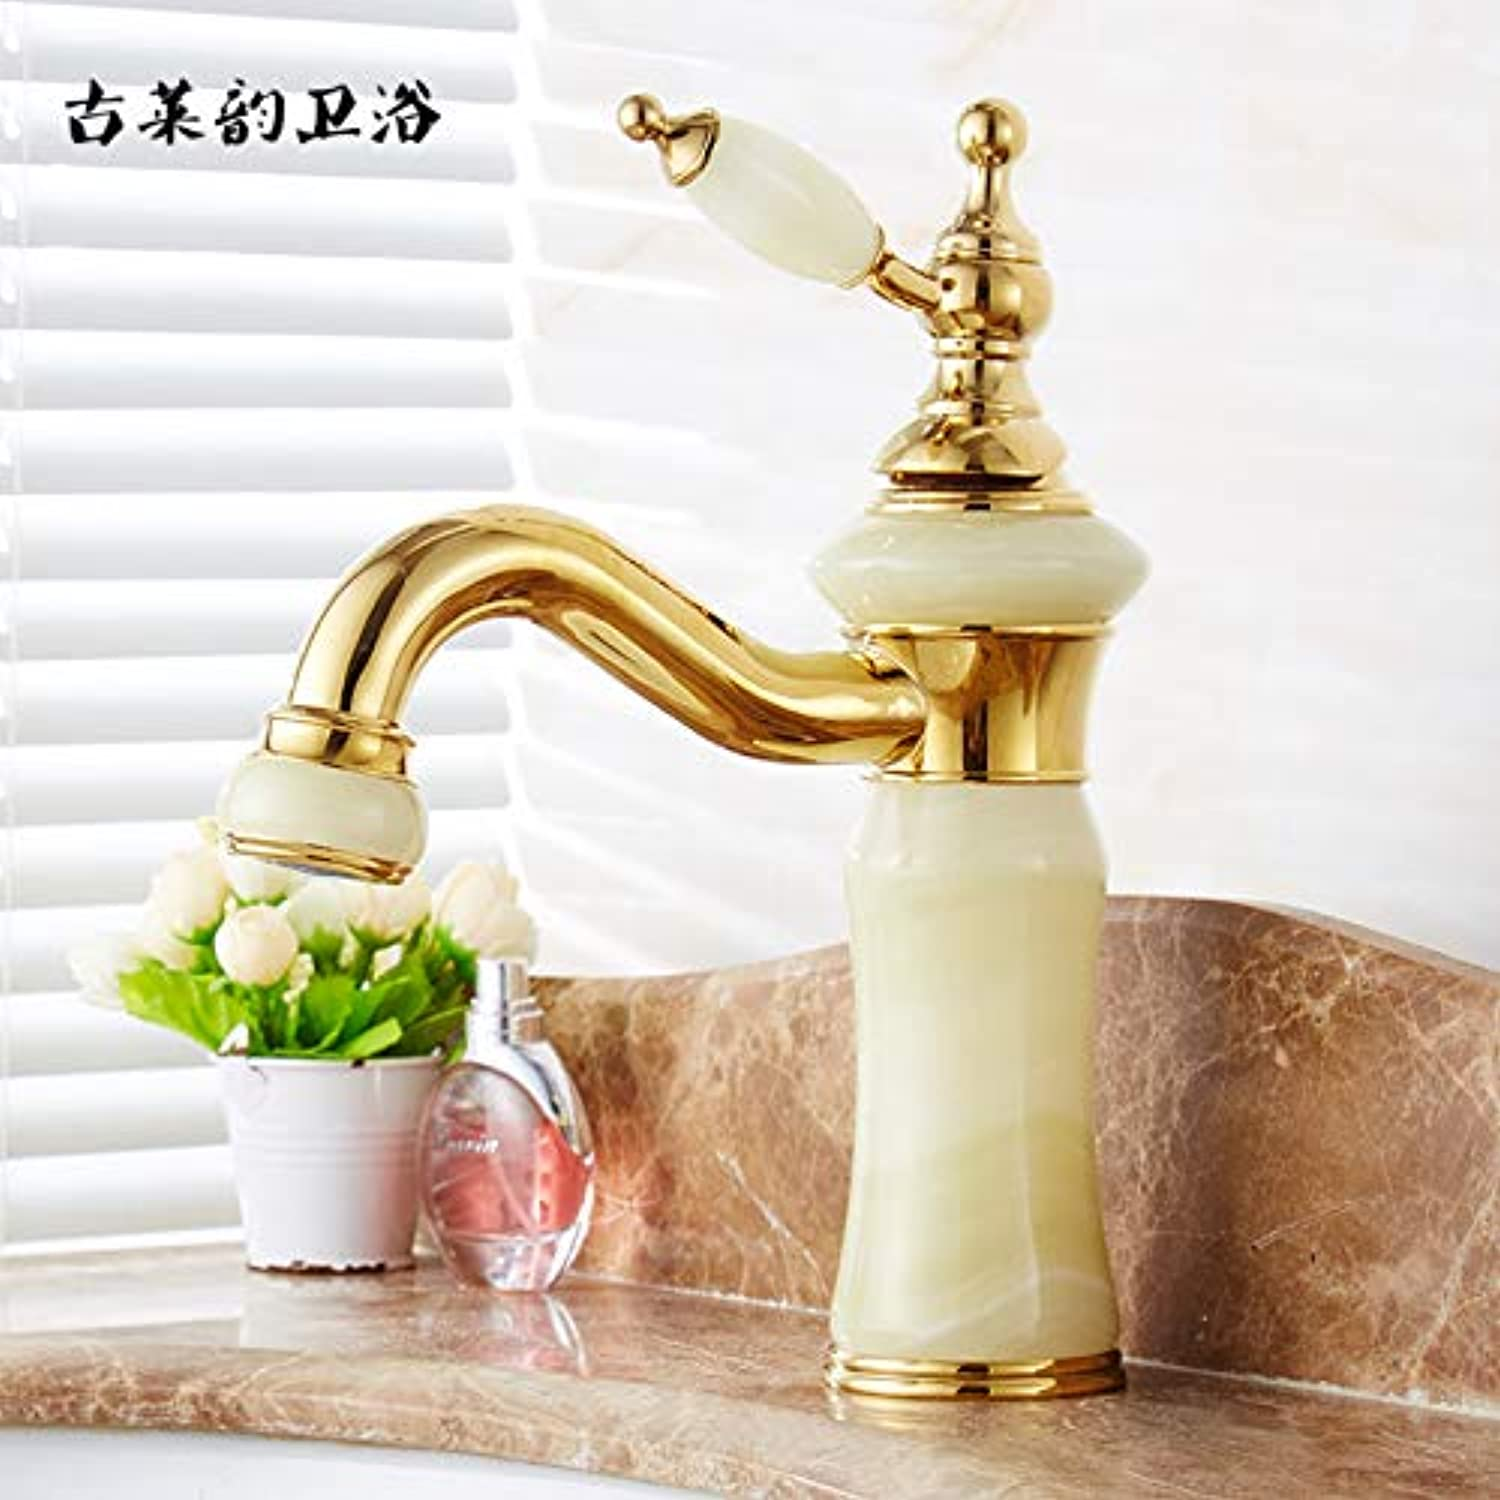 JONTON Taps Taps Taps redating Faucet_European Faucet Hot And Cold gold Marble redating Faucet Copper Wash Basin Basin Faucet, Sapphire Pagoda Section [360 Degree redation]